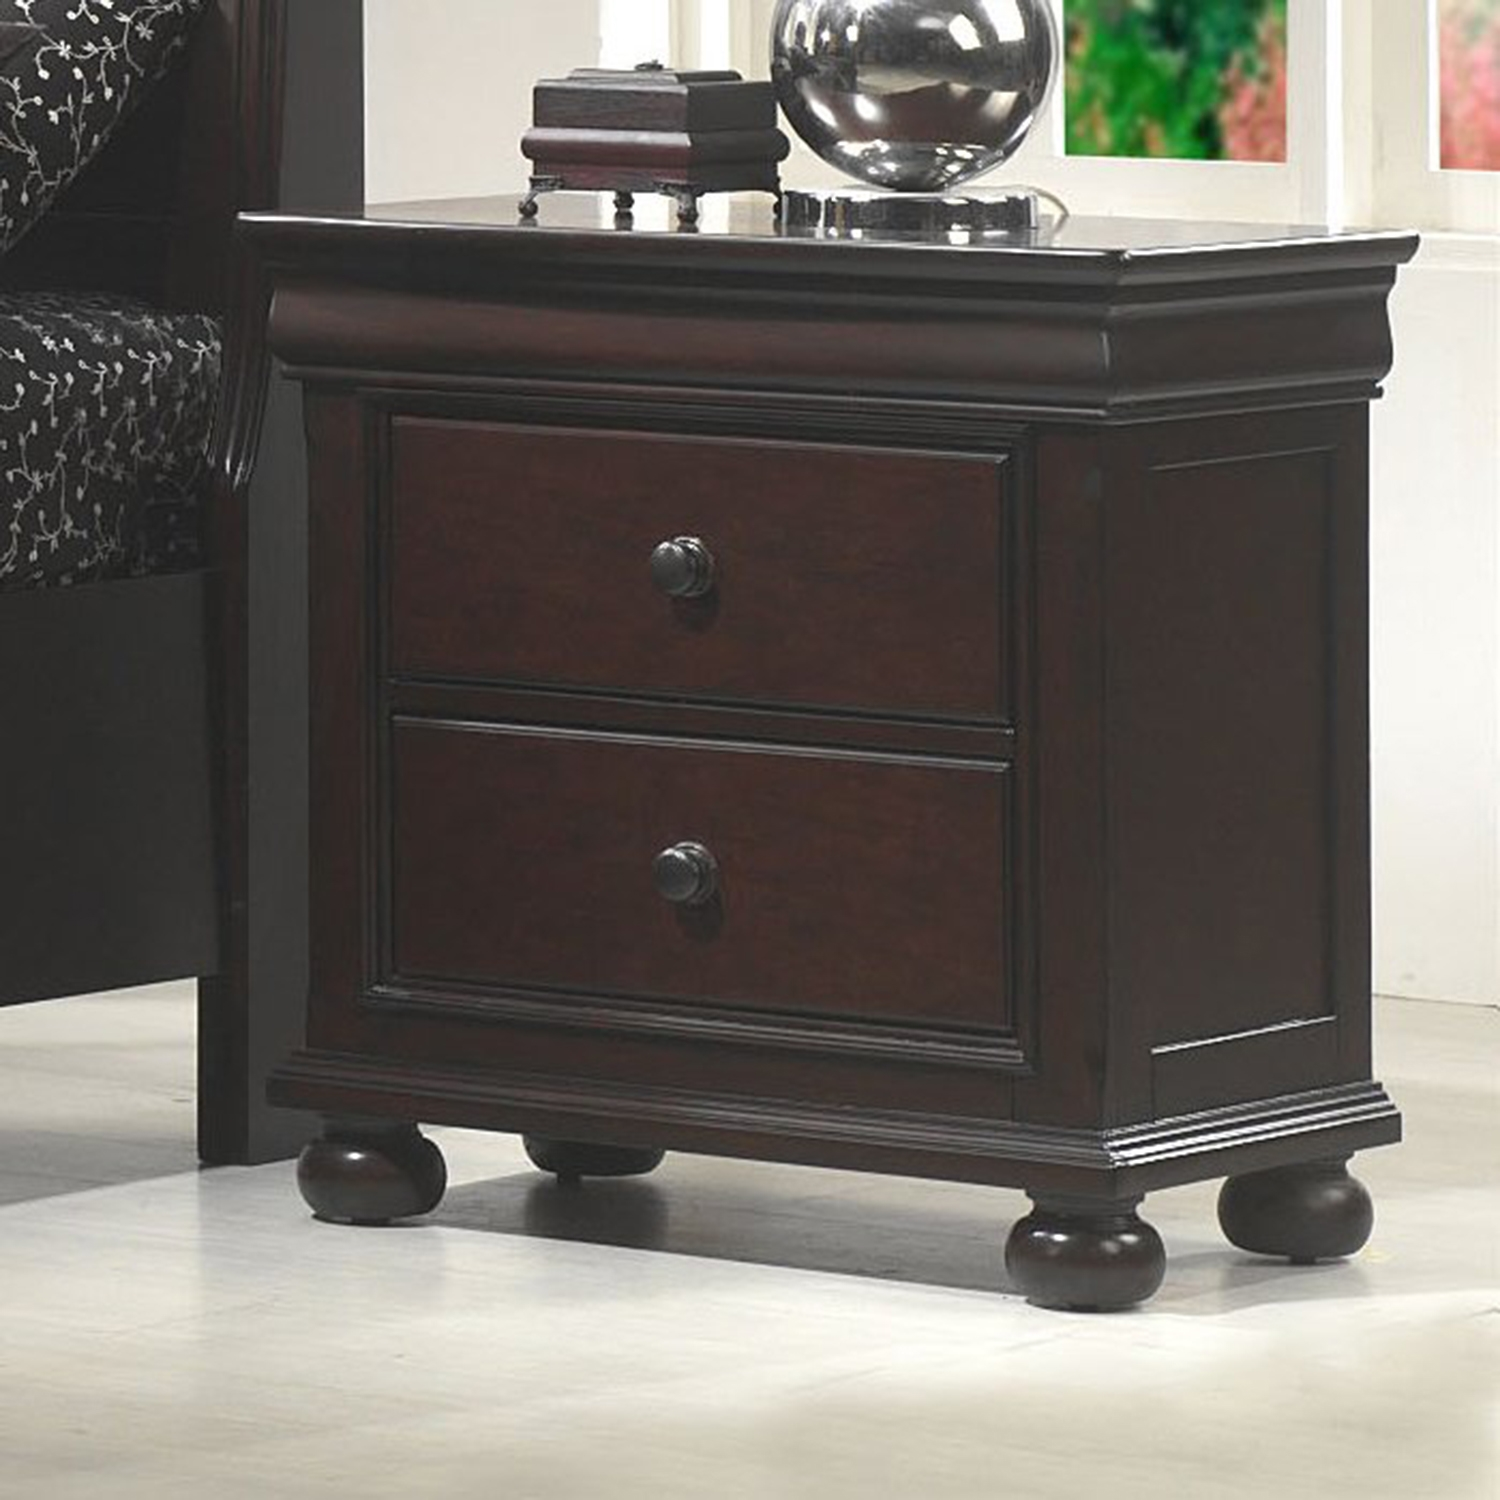 Hyde Park 2-Drawer Nightstand - Merlot - AW-1310-NS